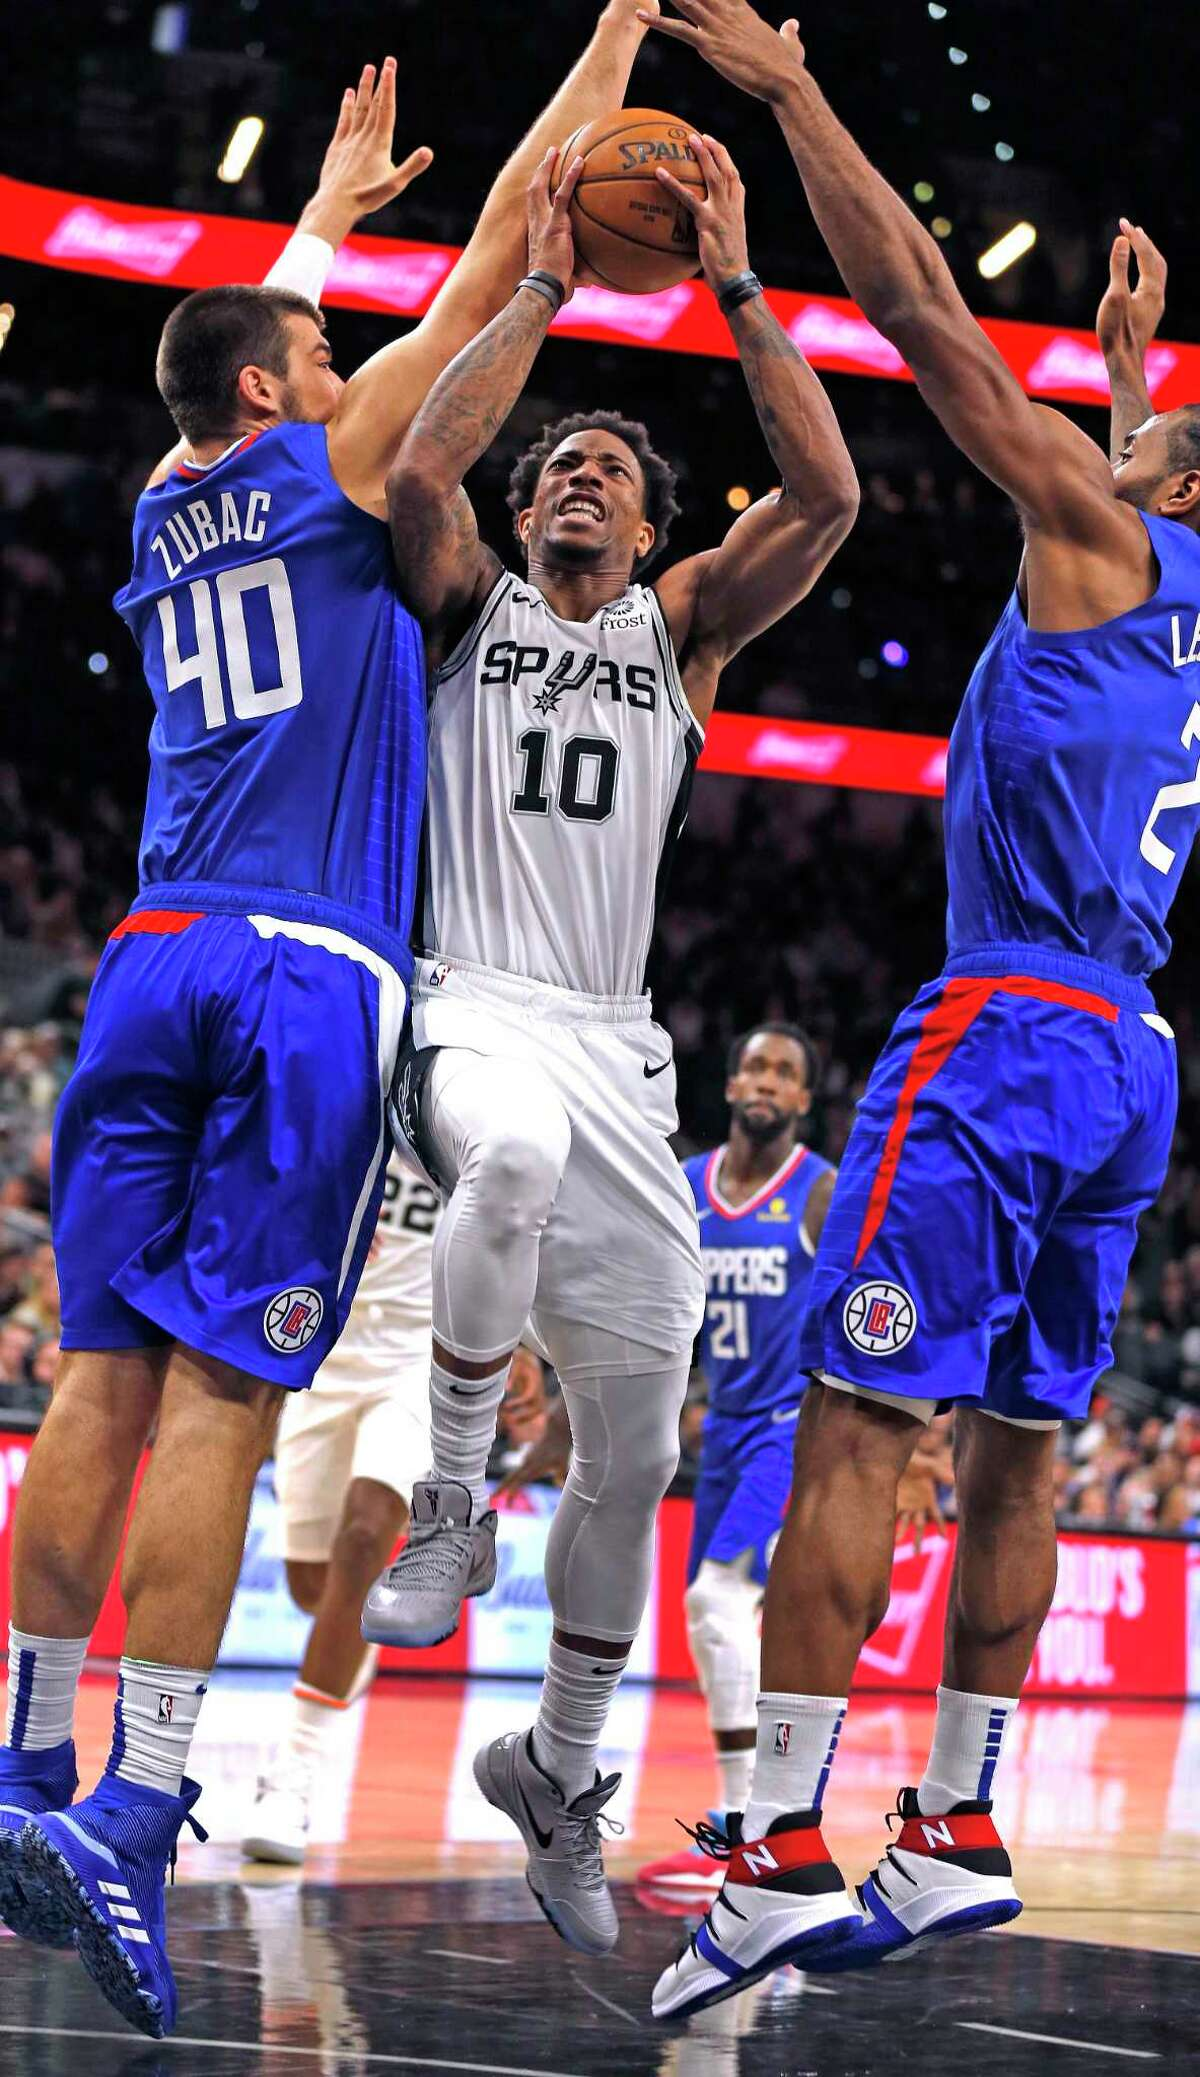 DeMar DeRozan #10 of the San Antonio Spurs drives between Ivica Zubac #40 of the Los Angeles Clippers and Kawhi Leonard #2 in the first half of the game between the San Antonio Spurs and the Los Angeles Clippers on Friday, November 29,2019 at AT&T Center.